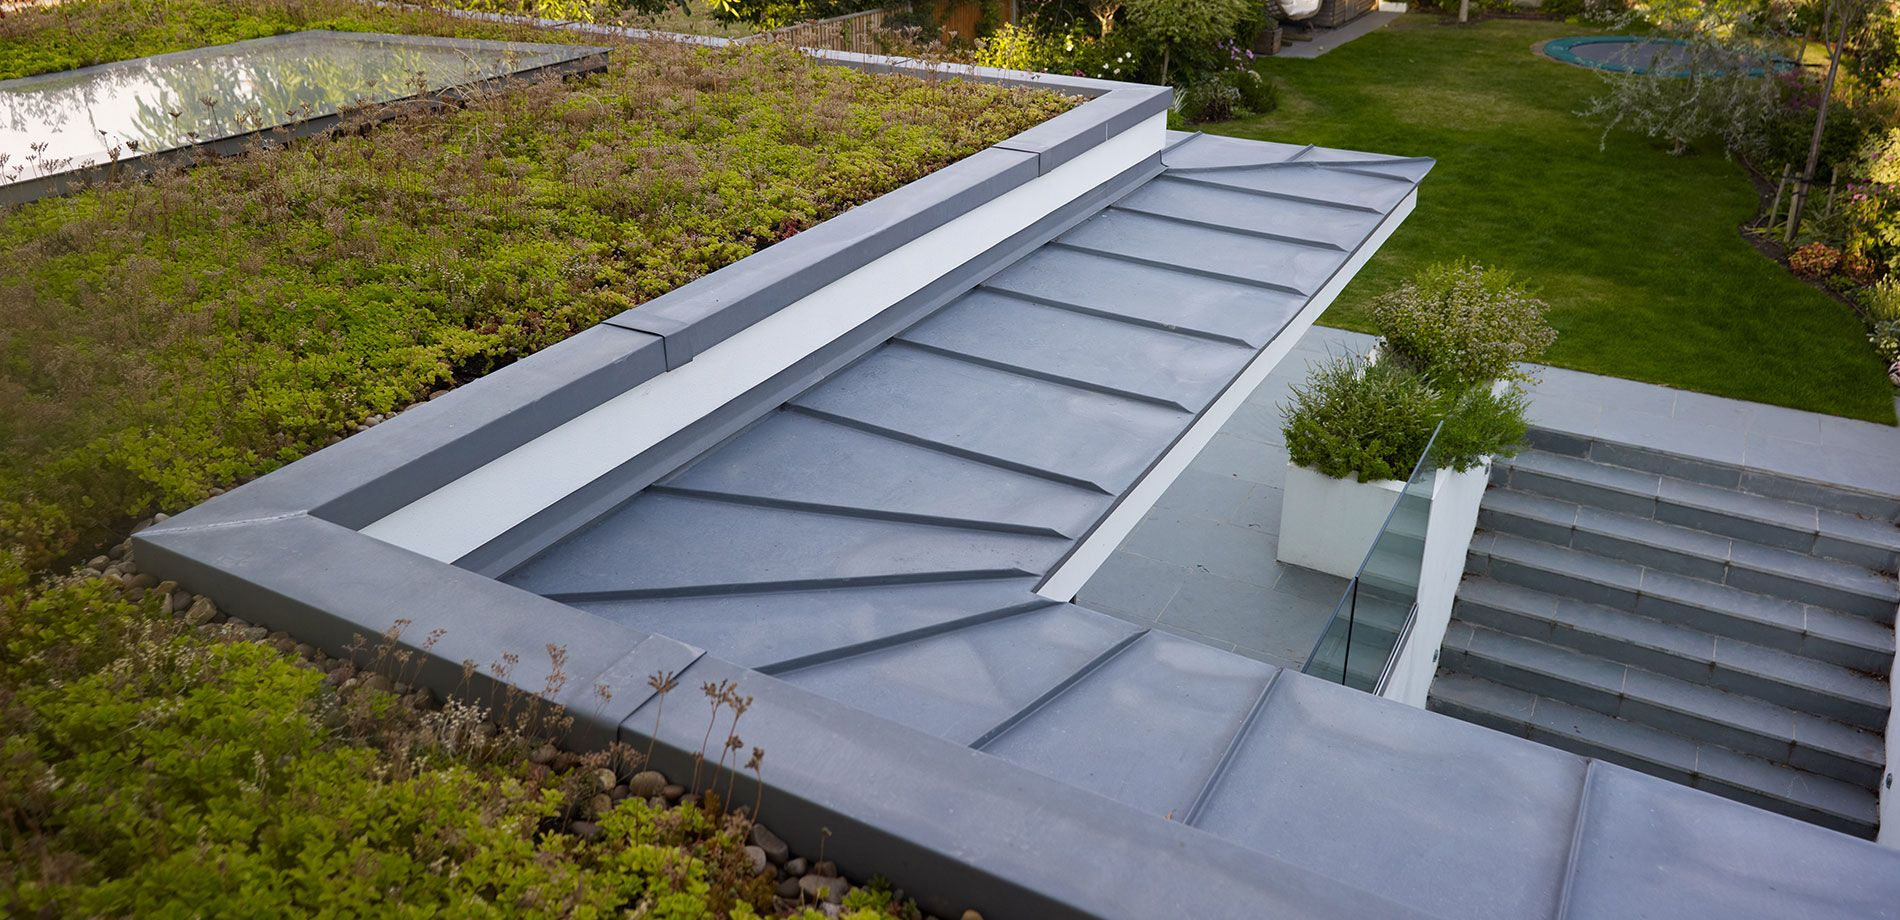 Best Green Roof With Zinc Or Metal Coping Green Architecture Zöld Építészet Pinterest Green 400 x 300